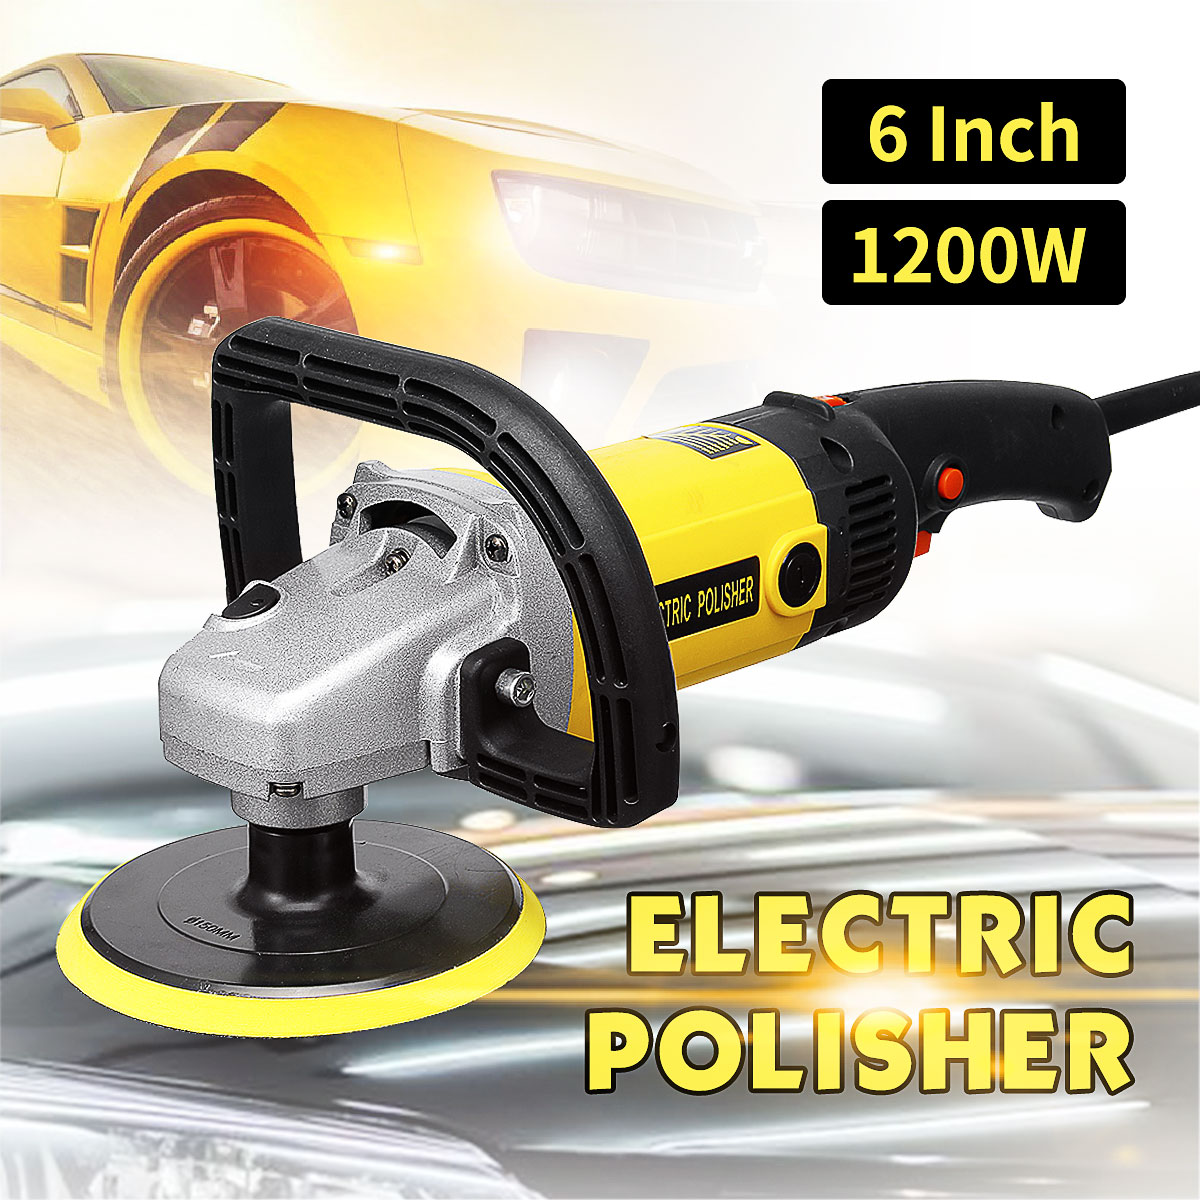 1200W Grinder Mini Polishing Machine Car Polisher Sanding Machine Orbit Polish Adjustable Speed Sanding Waxing Power Tools 110V